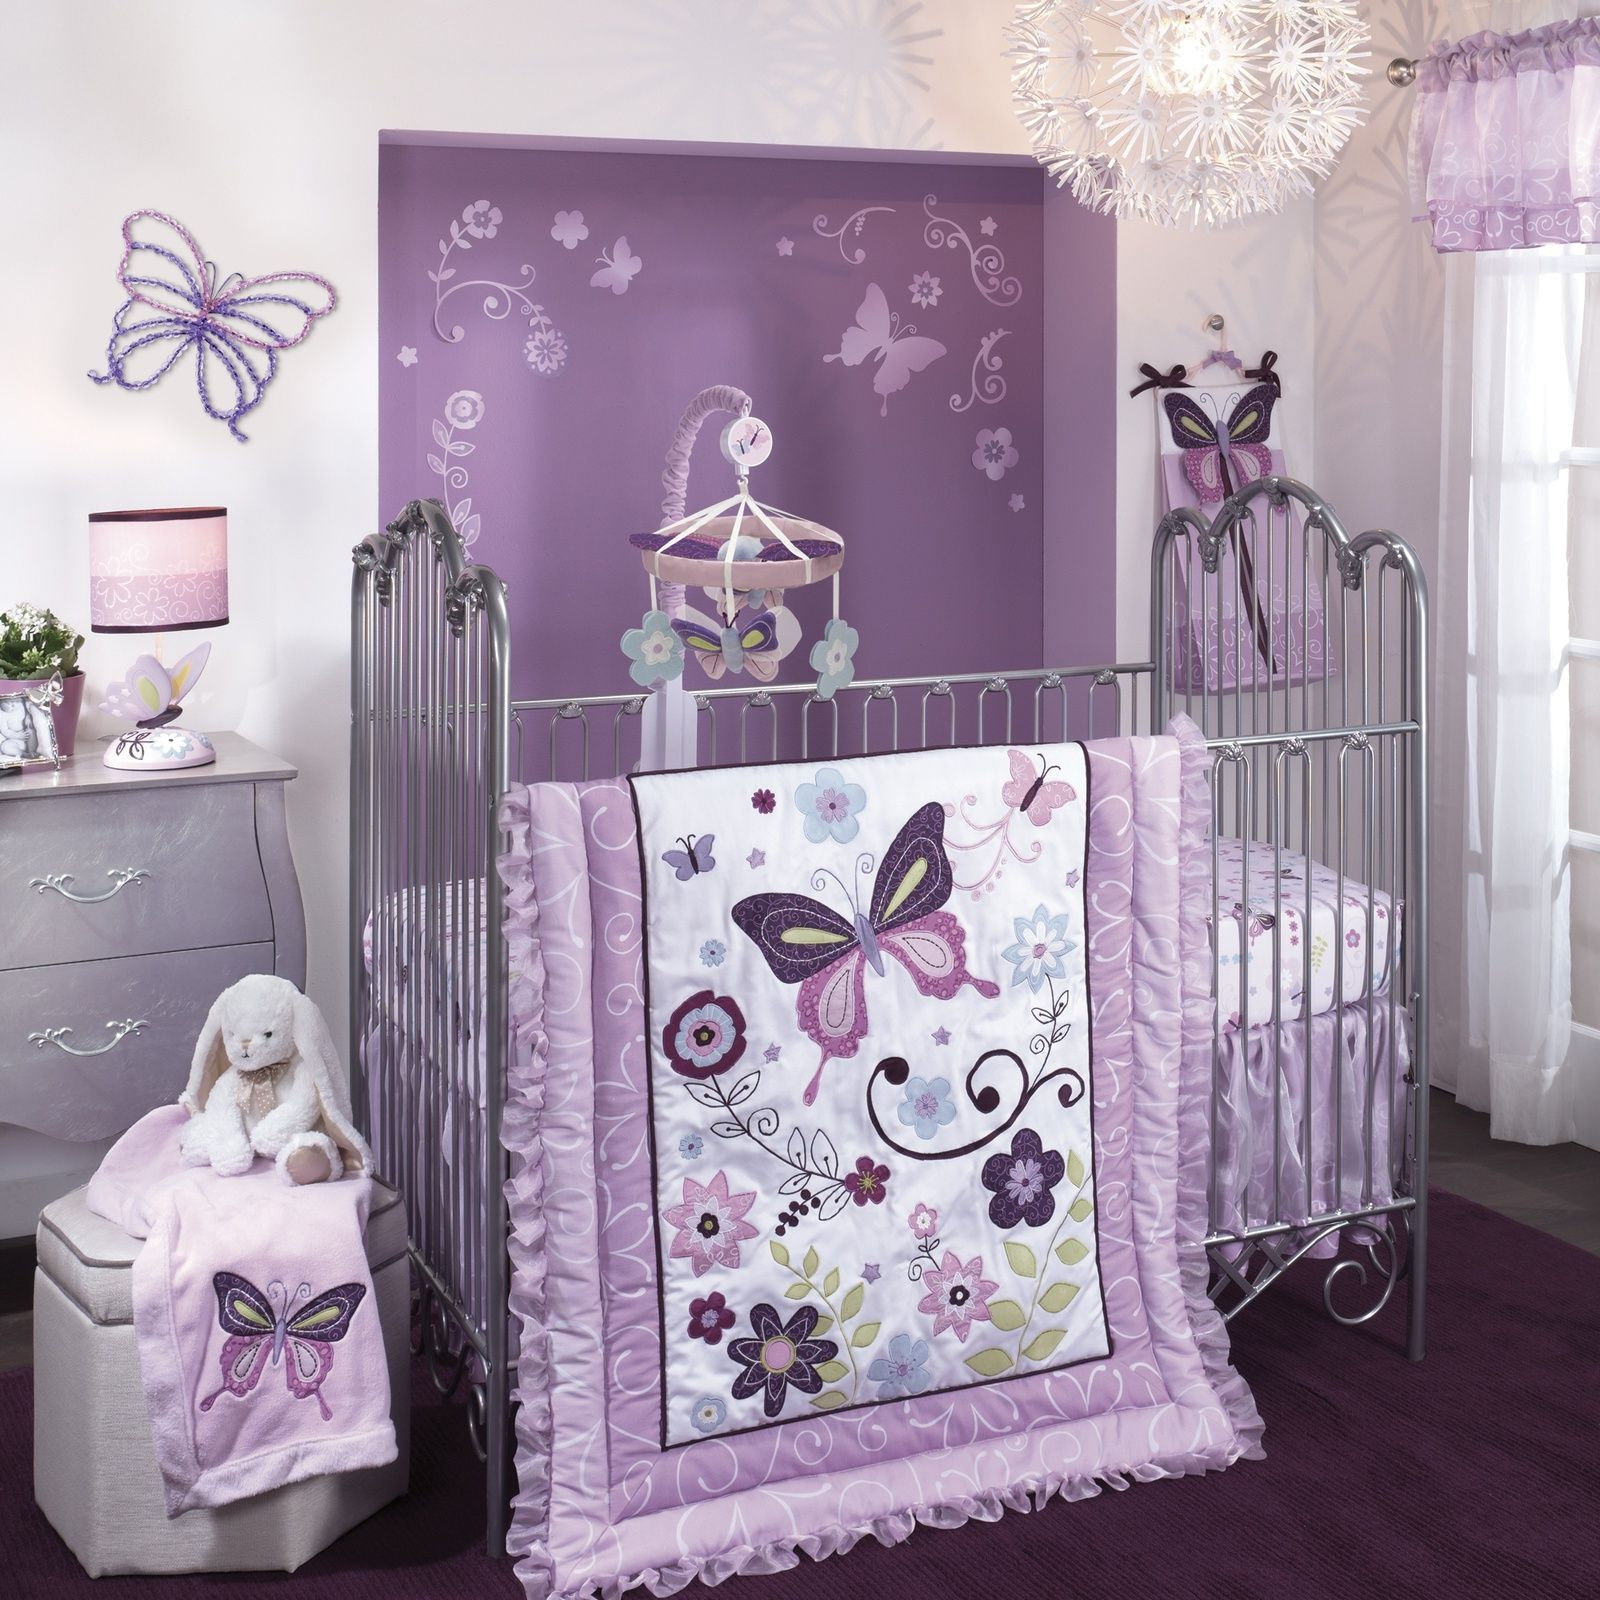 Bedroom Cozy Purple Theme Girl Nursery Ideas Lambs And